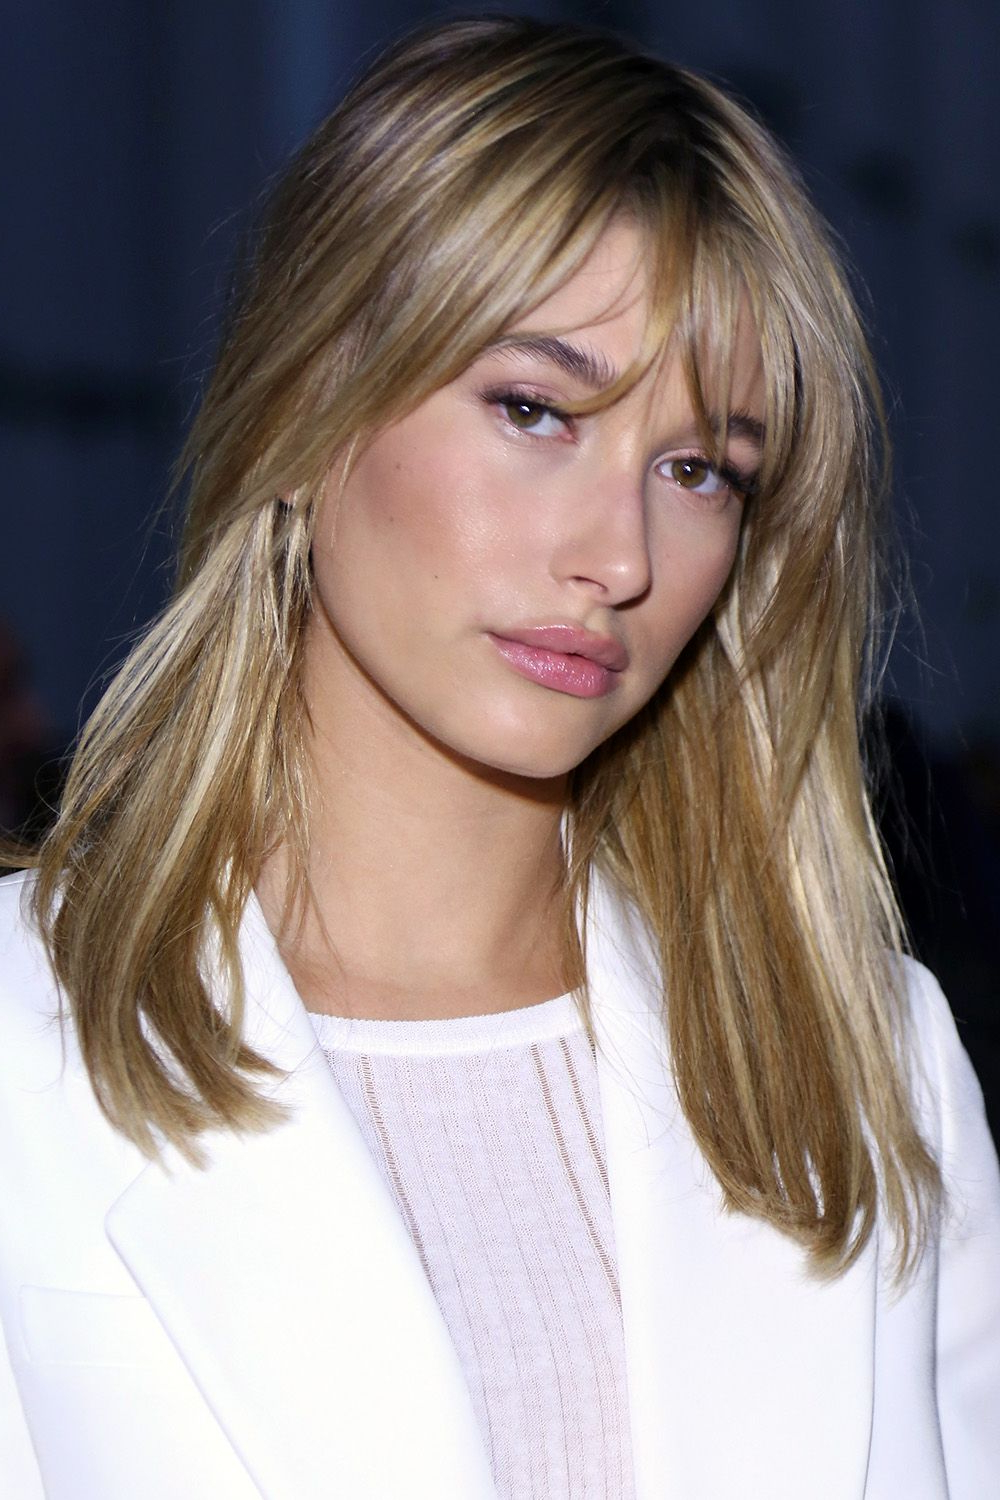 40 Best Medium Hairstyles – Celebrities With Shoulder Length Haircuts Intended For 2018 Medium Hairstyles With Long Fringe (View 11 of 20)